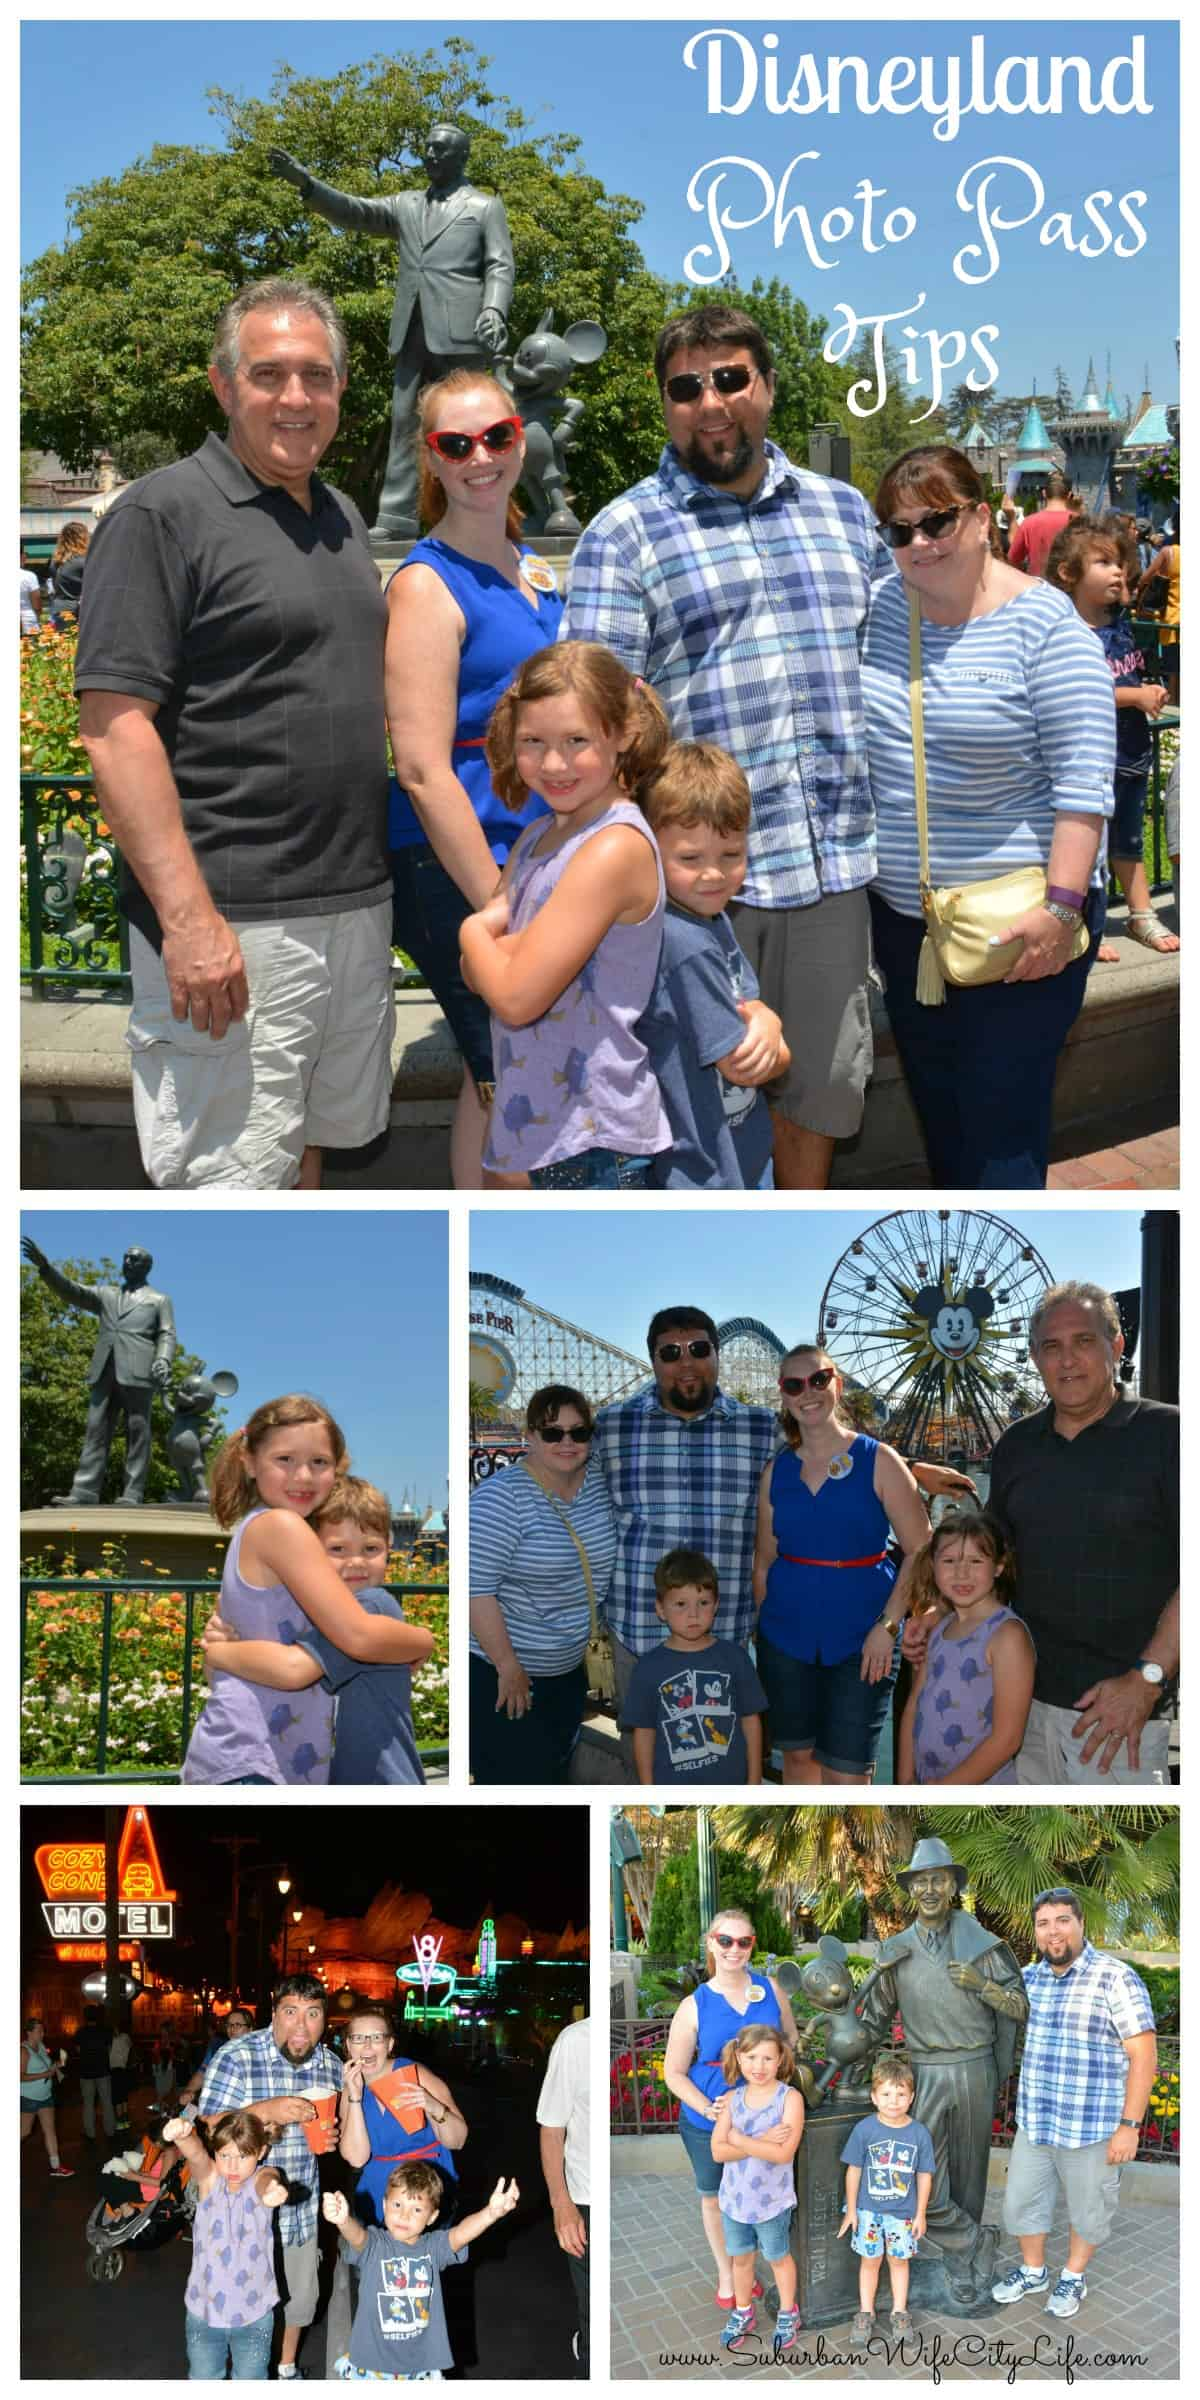 Disneyland Photo Pass